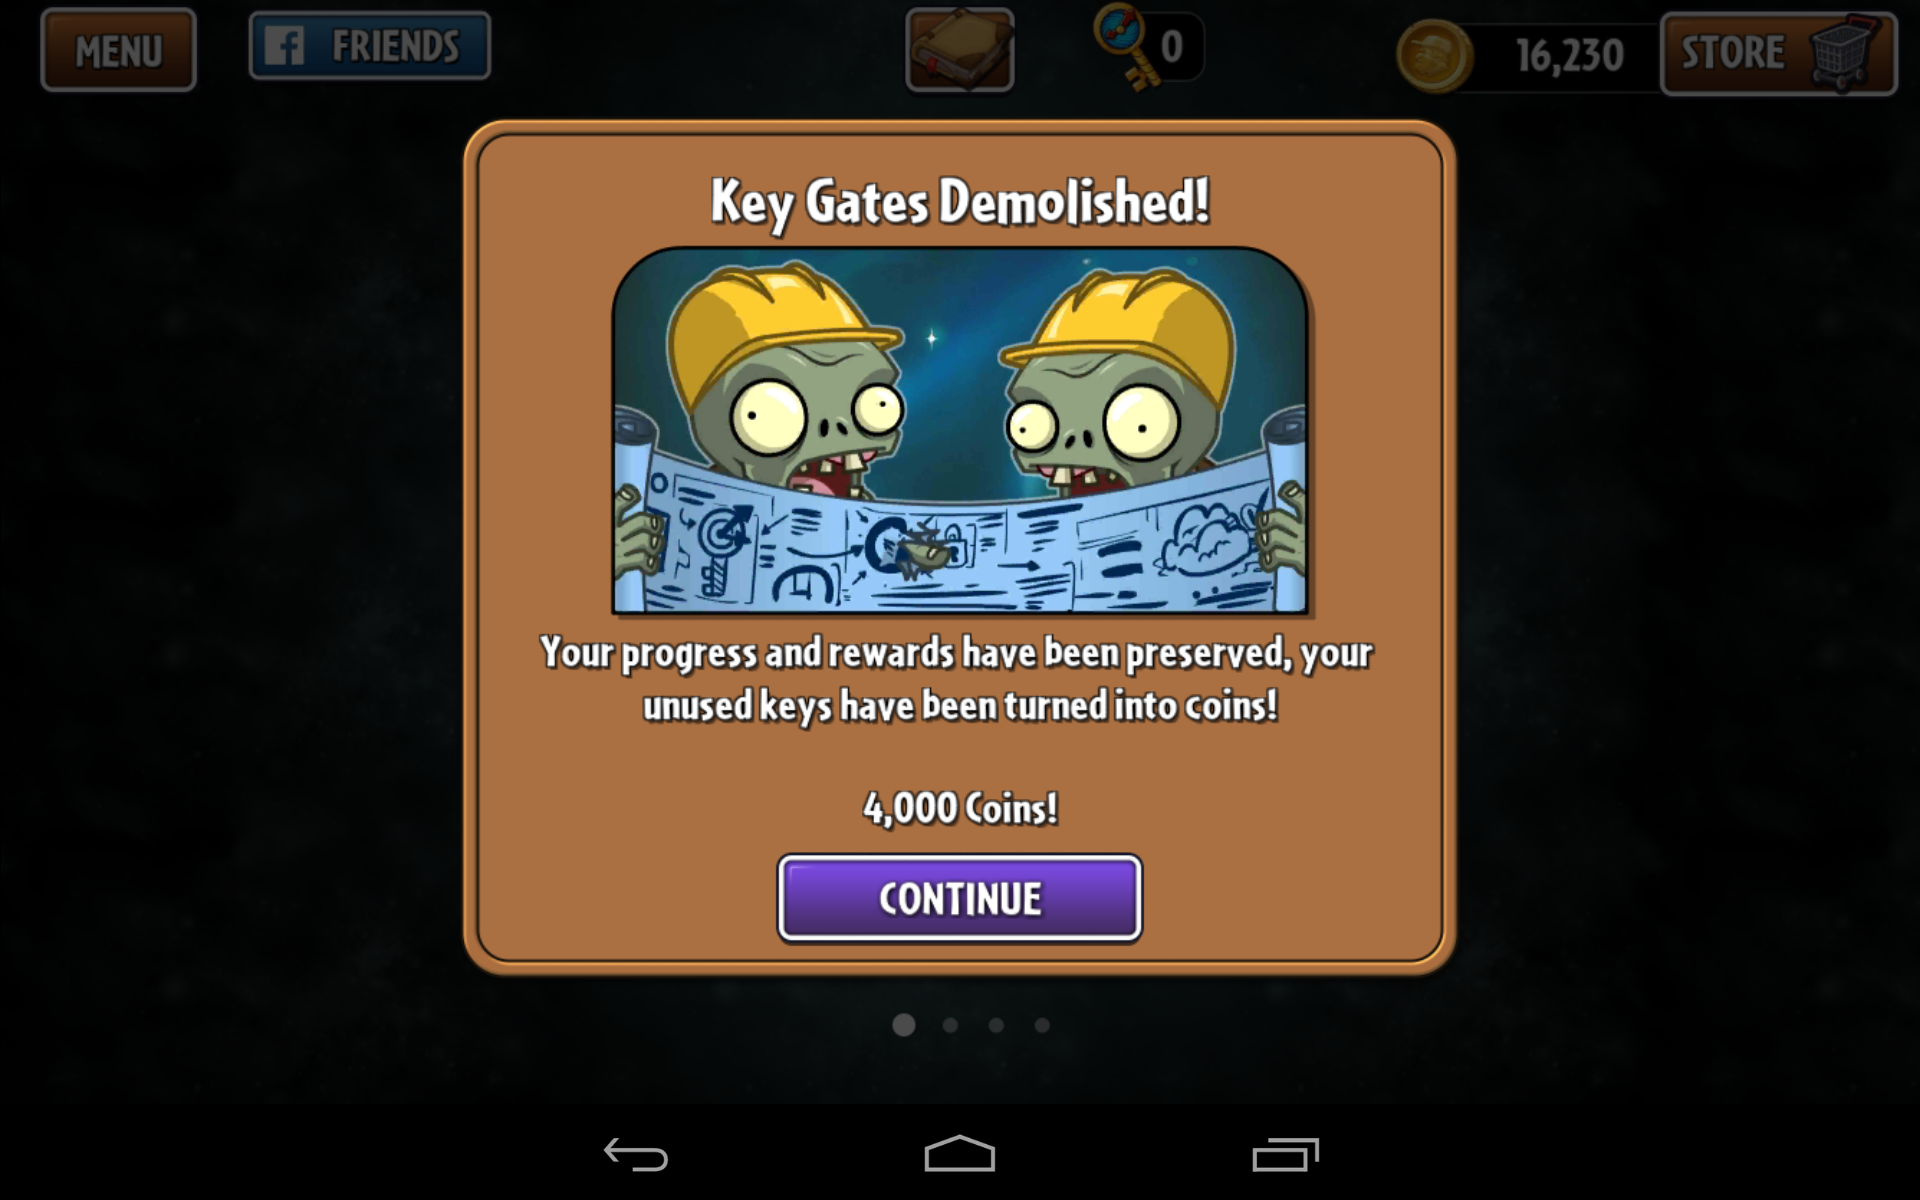 Plants Vs Zombies 2 Gets A Massive Update With Turbo Mode